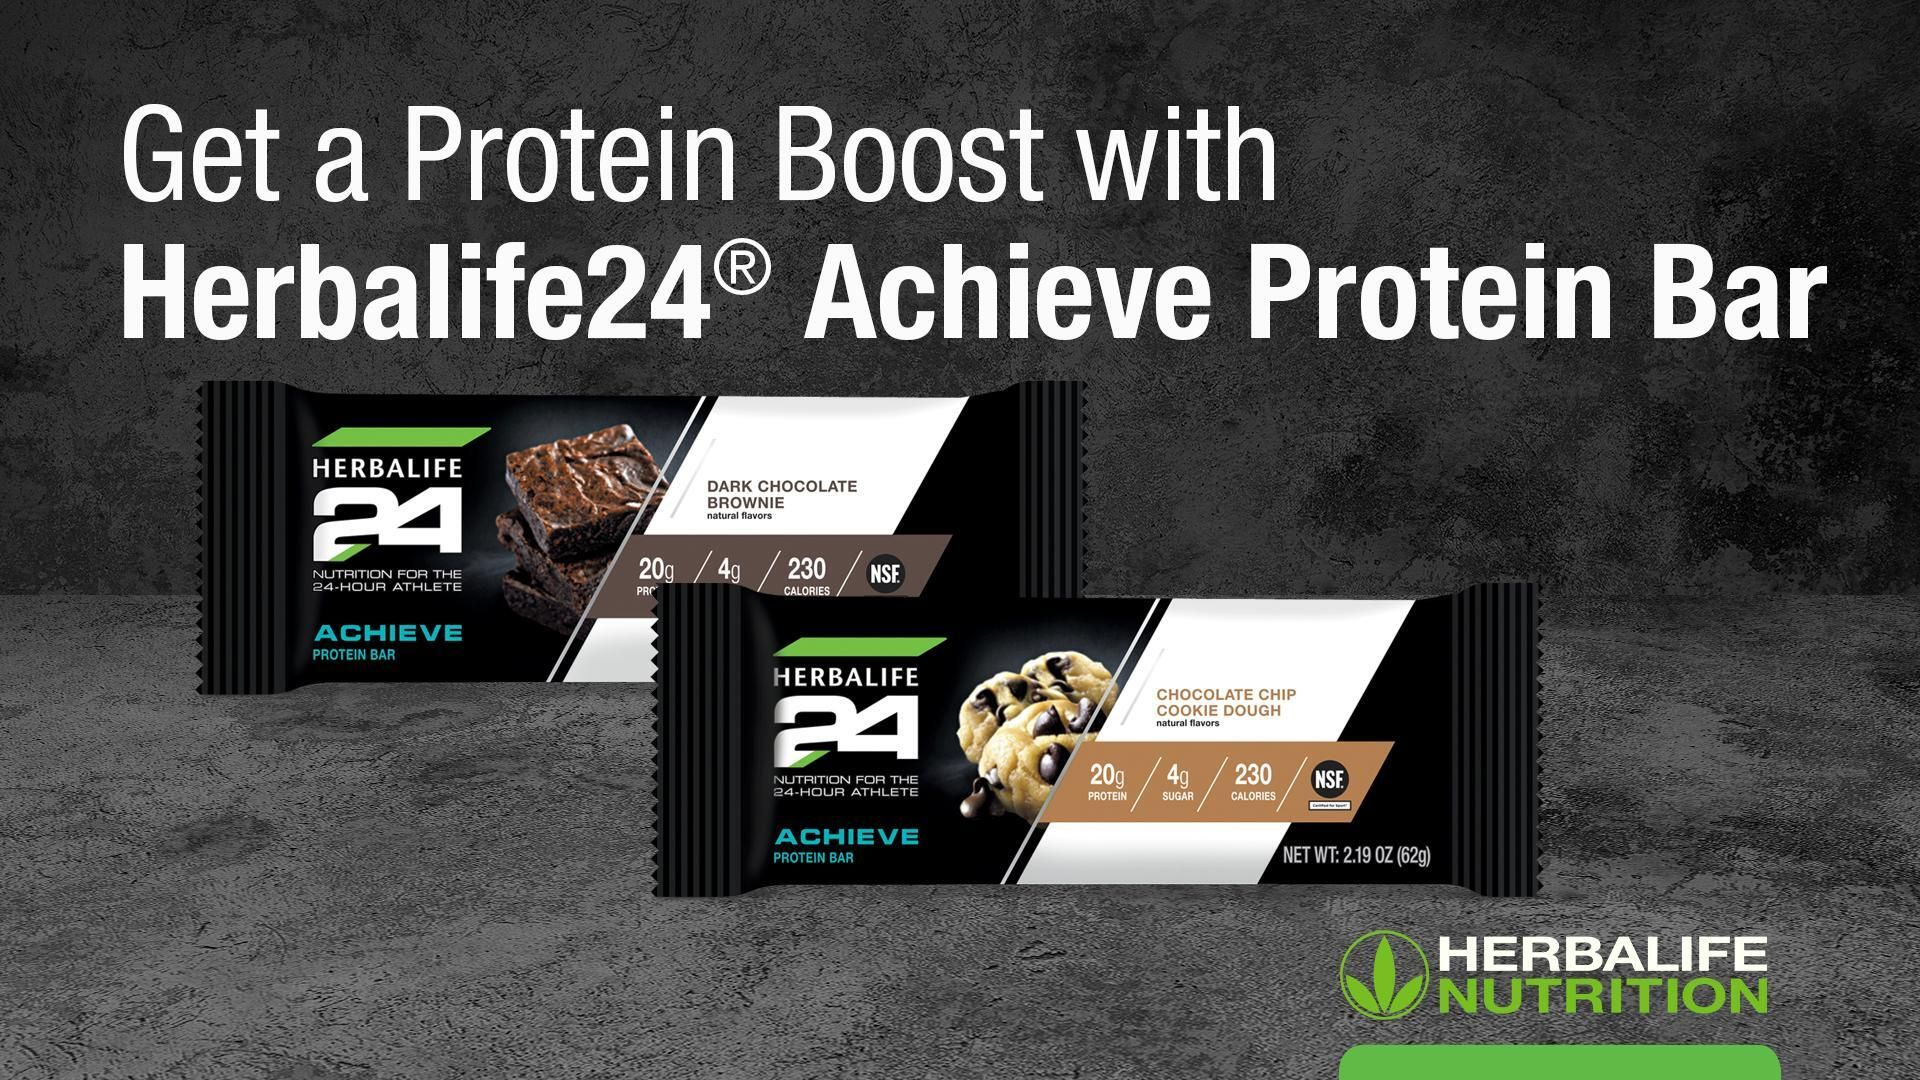 Herbalife24®  Achieve: Know the Products